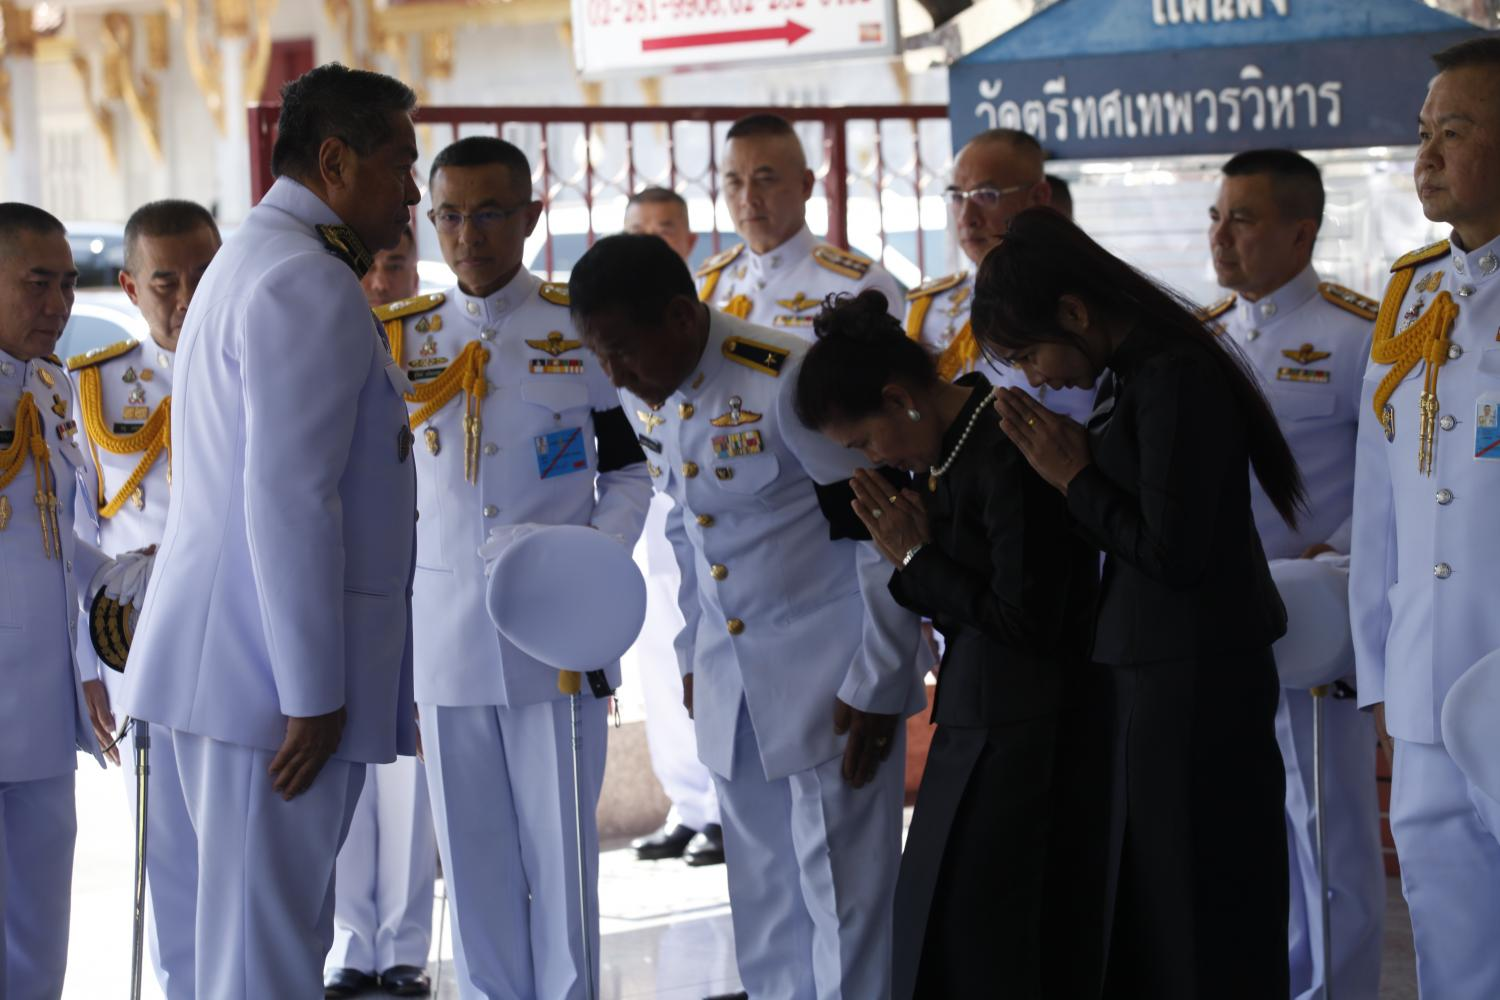 Privy councillor Palakorn Suwanrath on Sunday attended the royal-sponsored cremation of Pol Snr Sgt Maj Petcharat Kamchadpai, who died in the line of duty trying to help victims during the mass shooting at Nakhon Ratchasima's Terminal 21 last Saturday. (Photo by Nutthawat Wicheanbut)